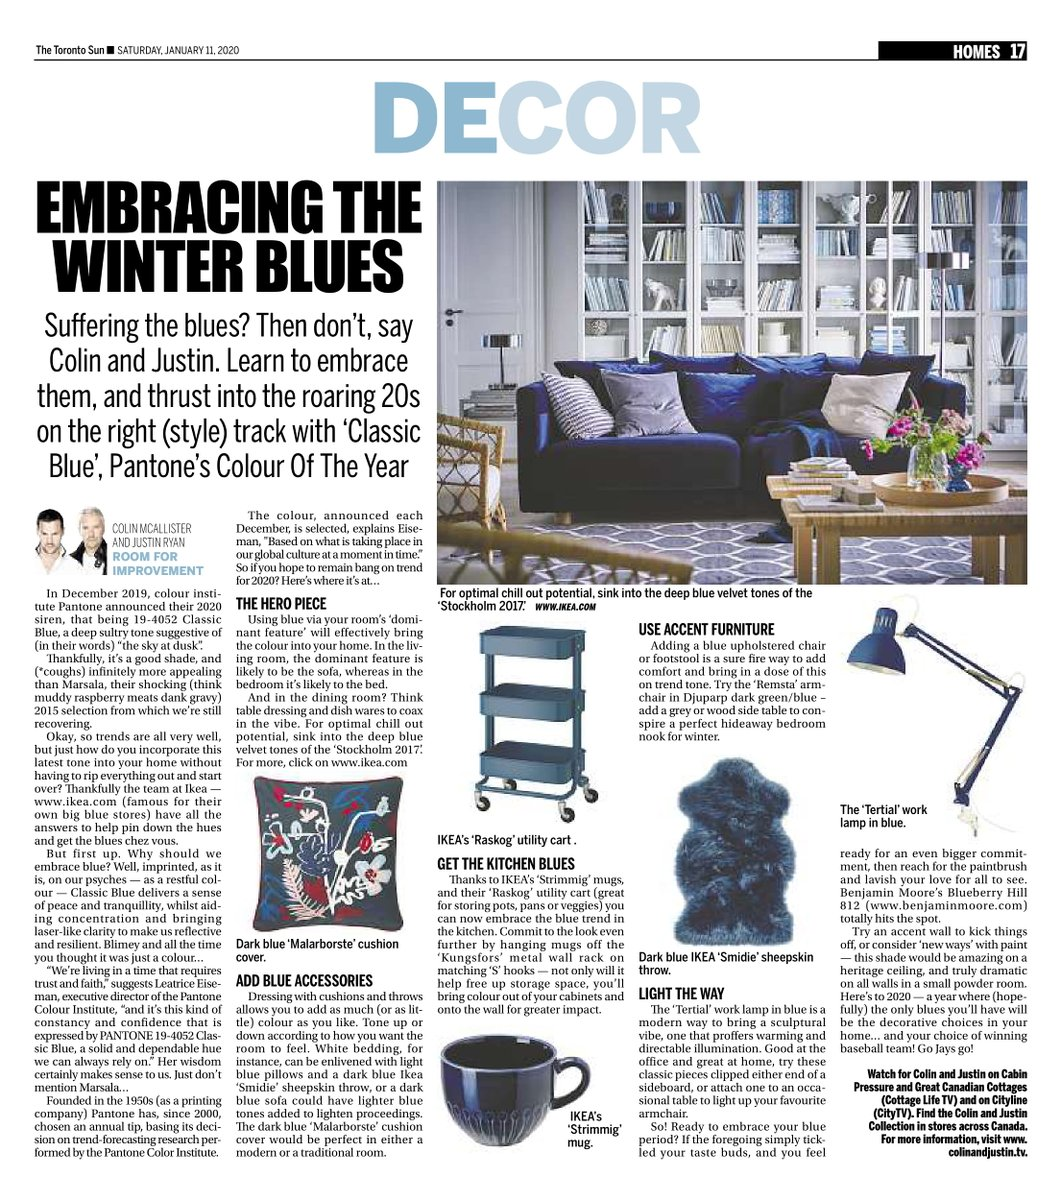 Still working the blue vibe - here's our column from Saturday's @TheTorontoSun with more info. And, thank God, not a hint (in pictorial terms, at least) of Marsala... #pantone @IKEACanada @BenjaminMooreCA https://t.co/2cCLish8Og